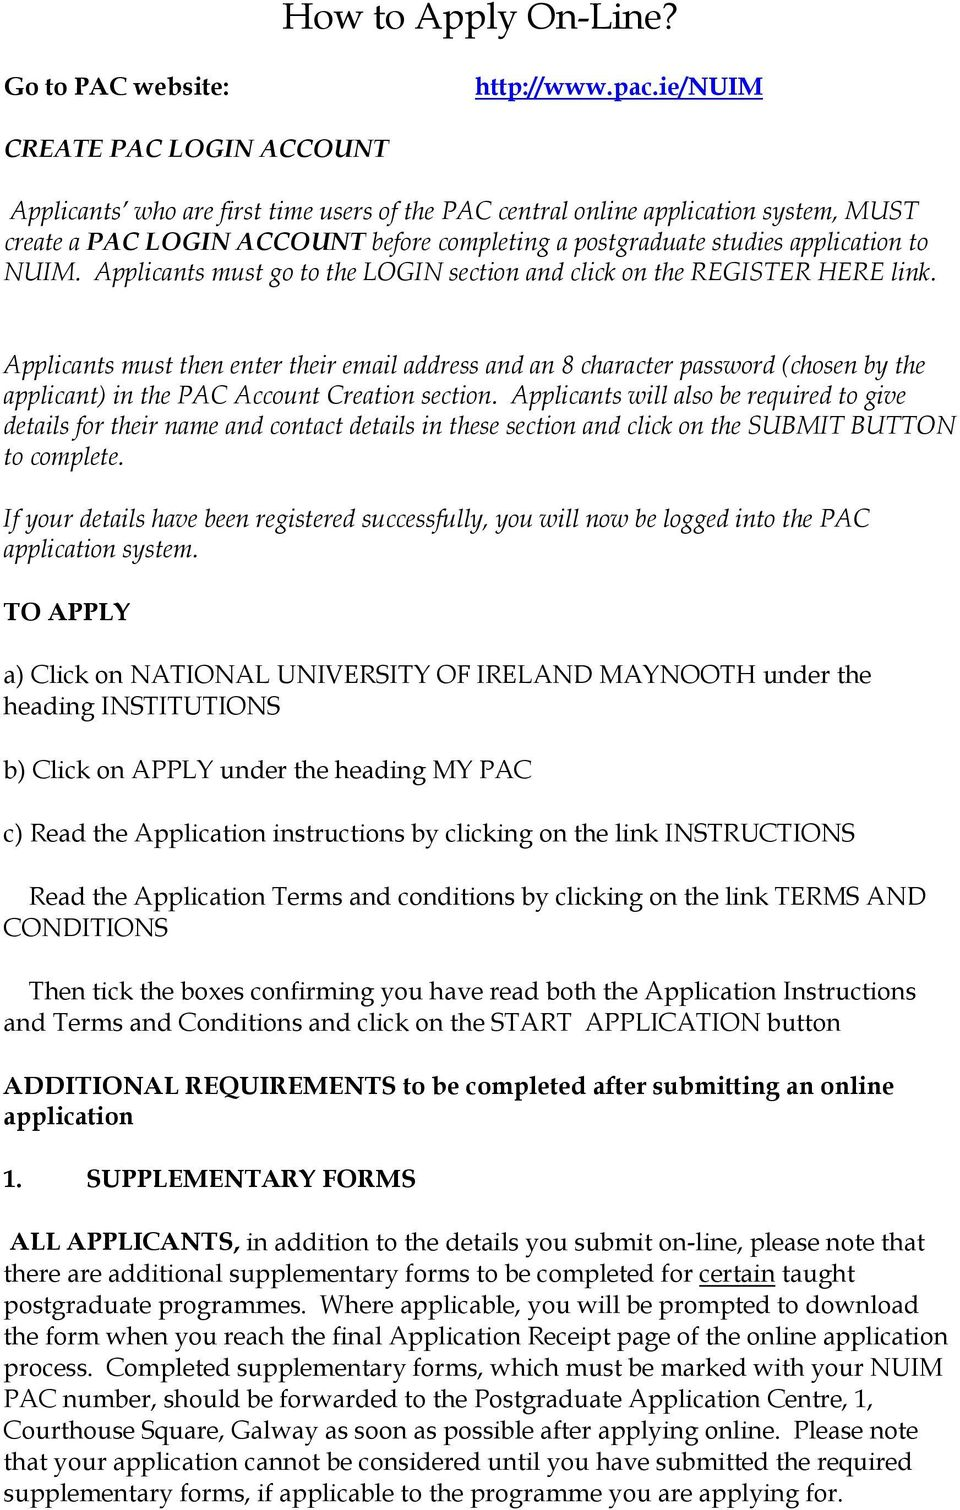 to NUIM. Applicants must go to the LOGIN section and click on the REGISTER HERE link.